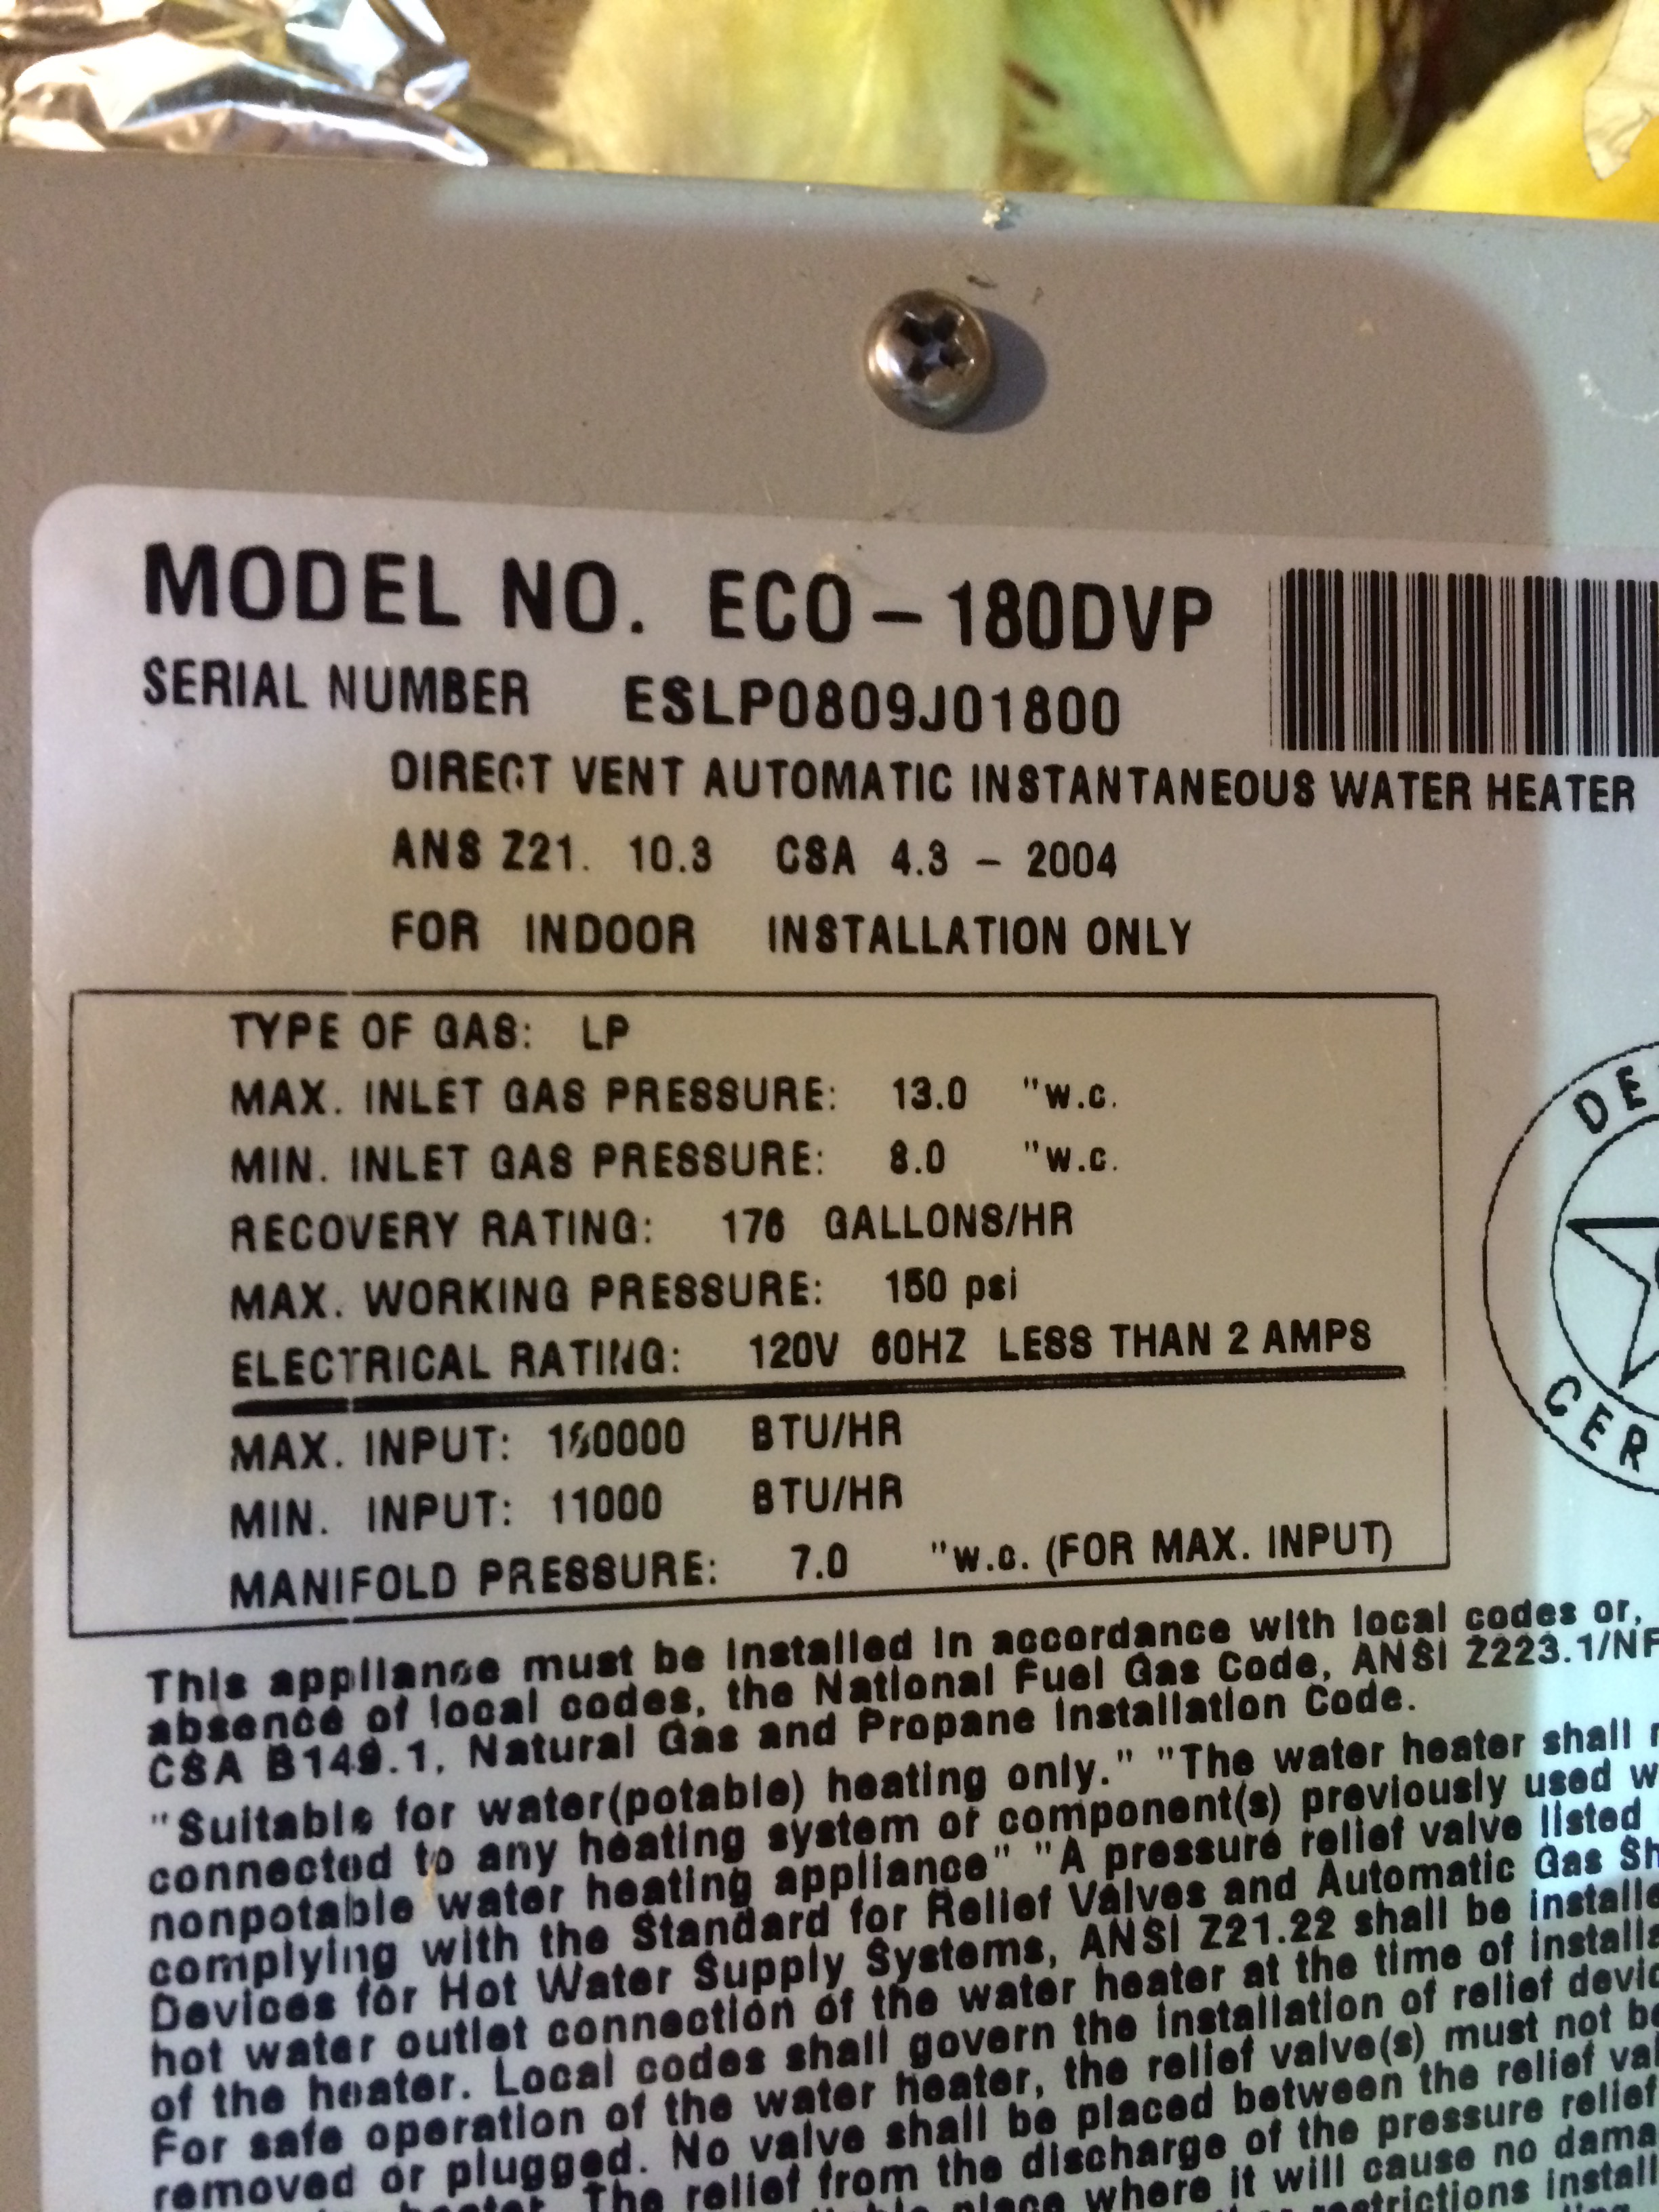 rheem 9 5 gpm natural gas high efficiency indoor tankless water heater. do you know anything about rheem tankless water heaters 9 5 gpm natural gas high efficiency indoor heater